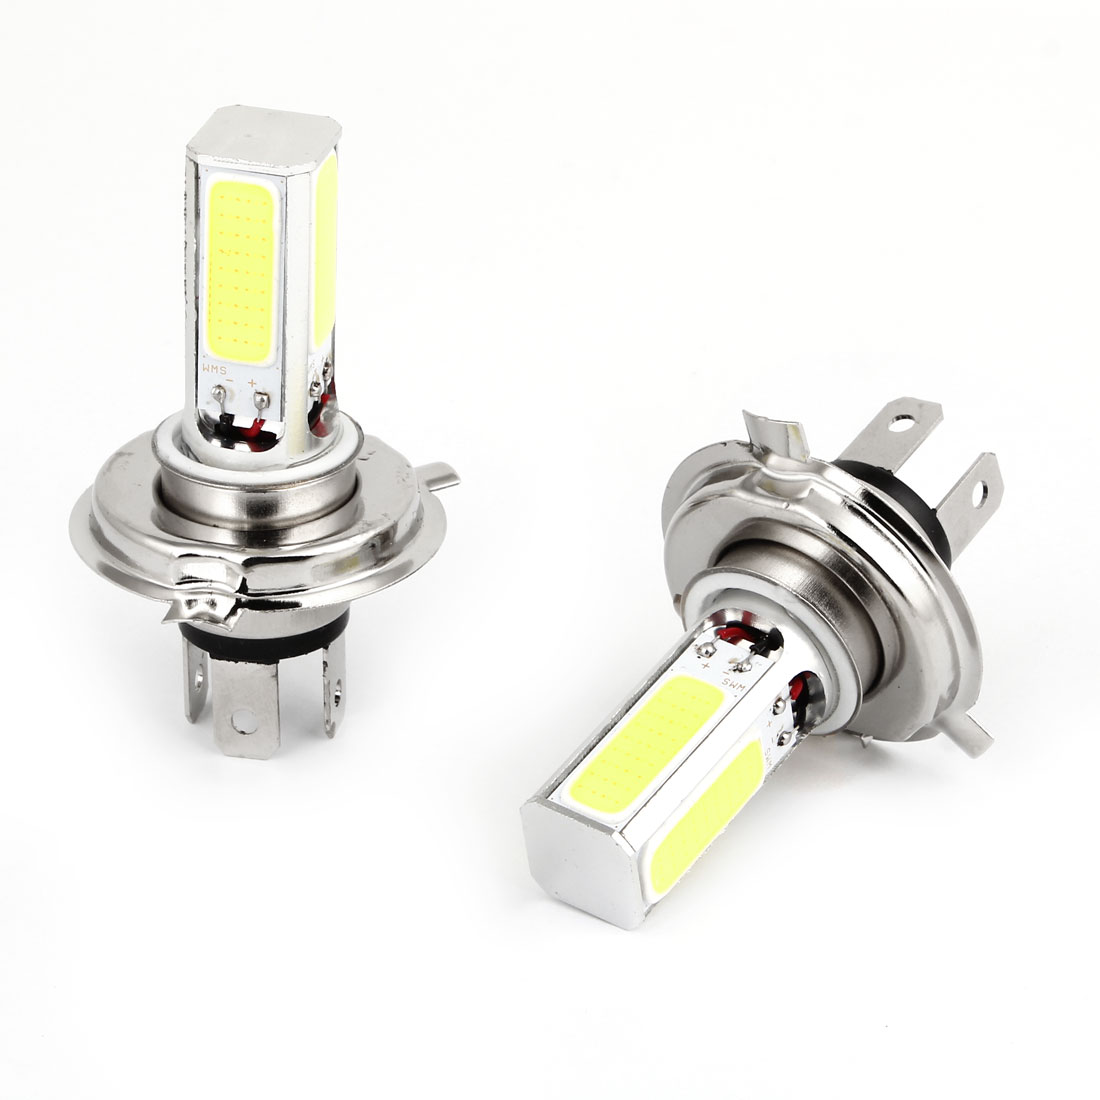 2 Pcs H4 White LED COB Low Beam Fog Lamp Lights Head Bulbs